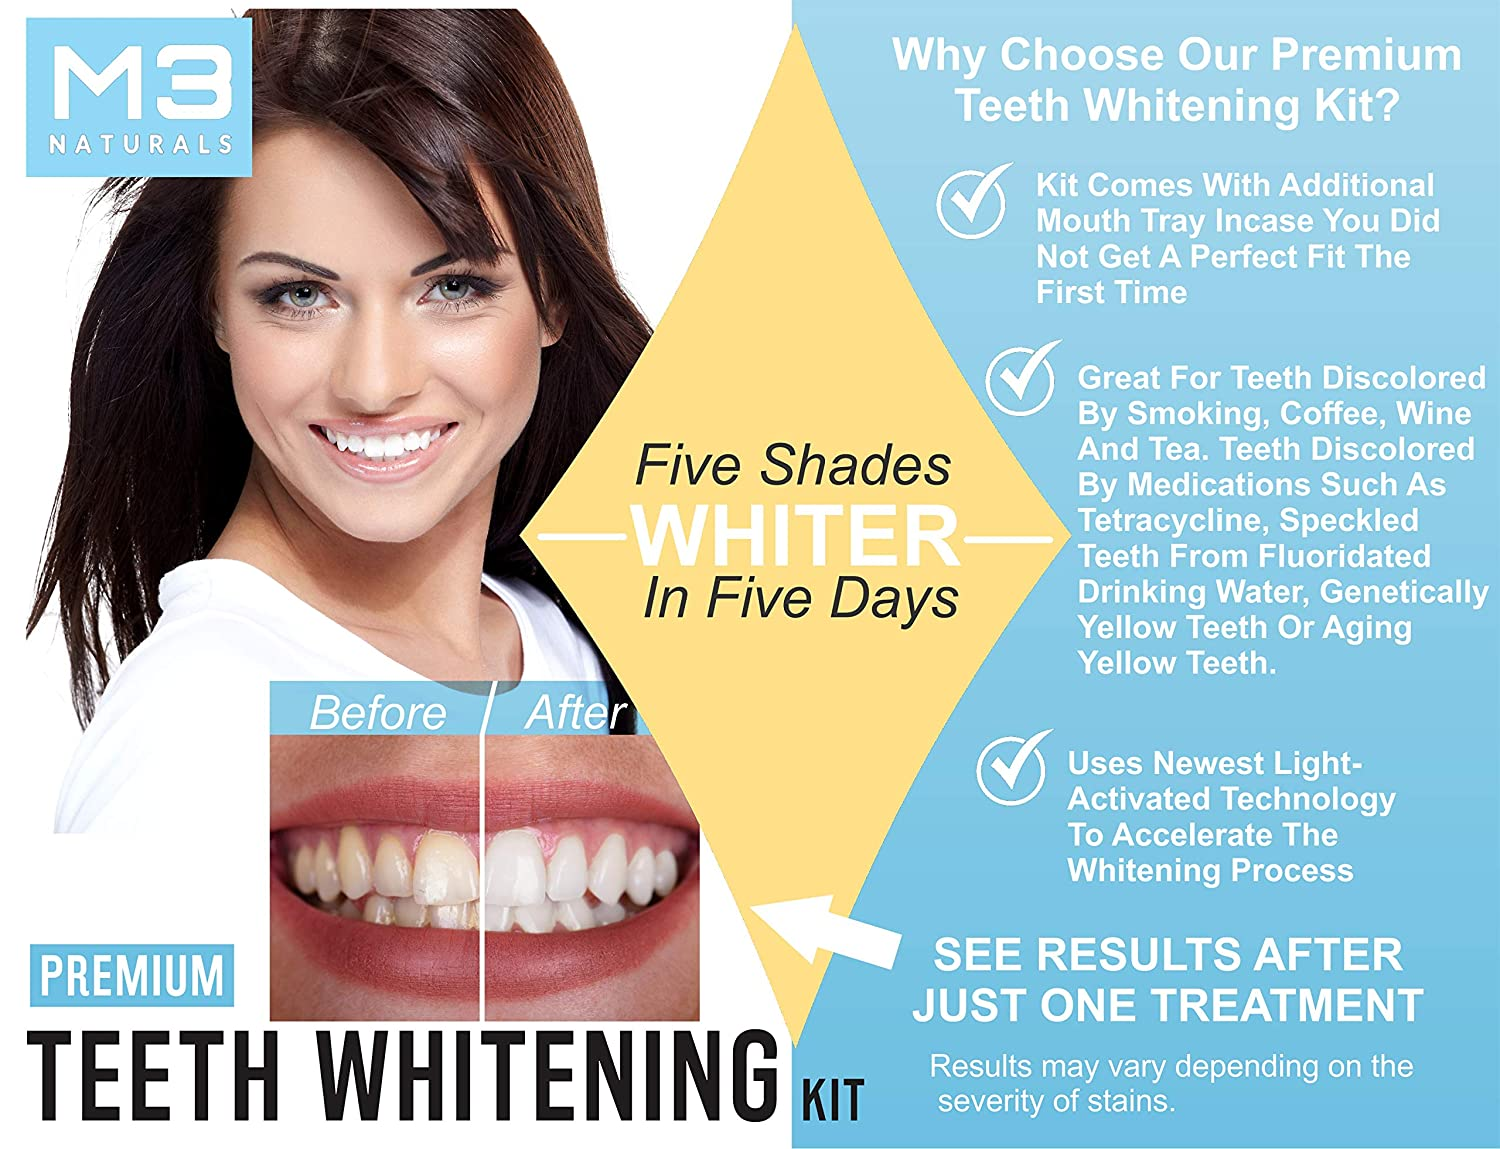 M3 Naturals Teeth Whitening Kit with LED Light Professional Stain Remover Non Sensitive 35/% Peroxide Gel Oral Remineralization Gel Custom Trays Retainer Case 5 /…